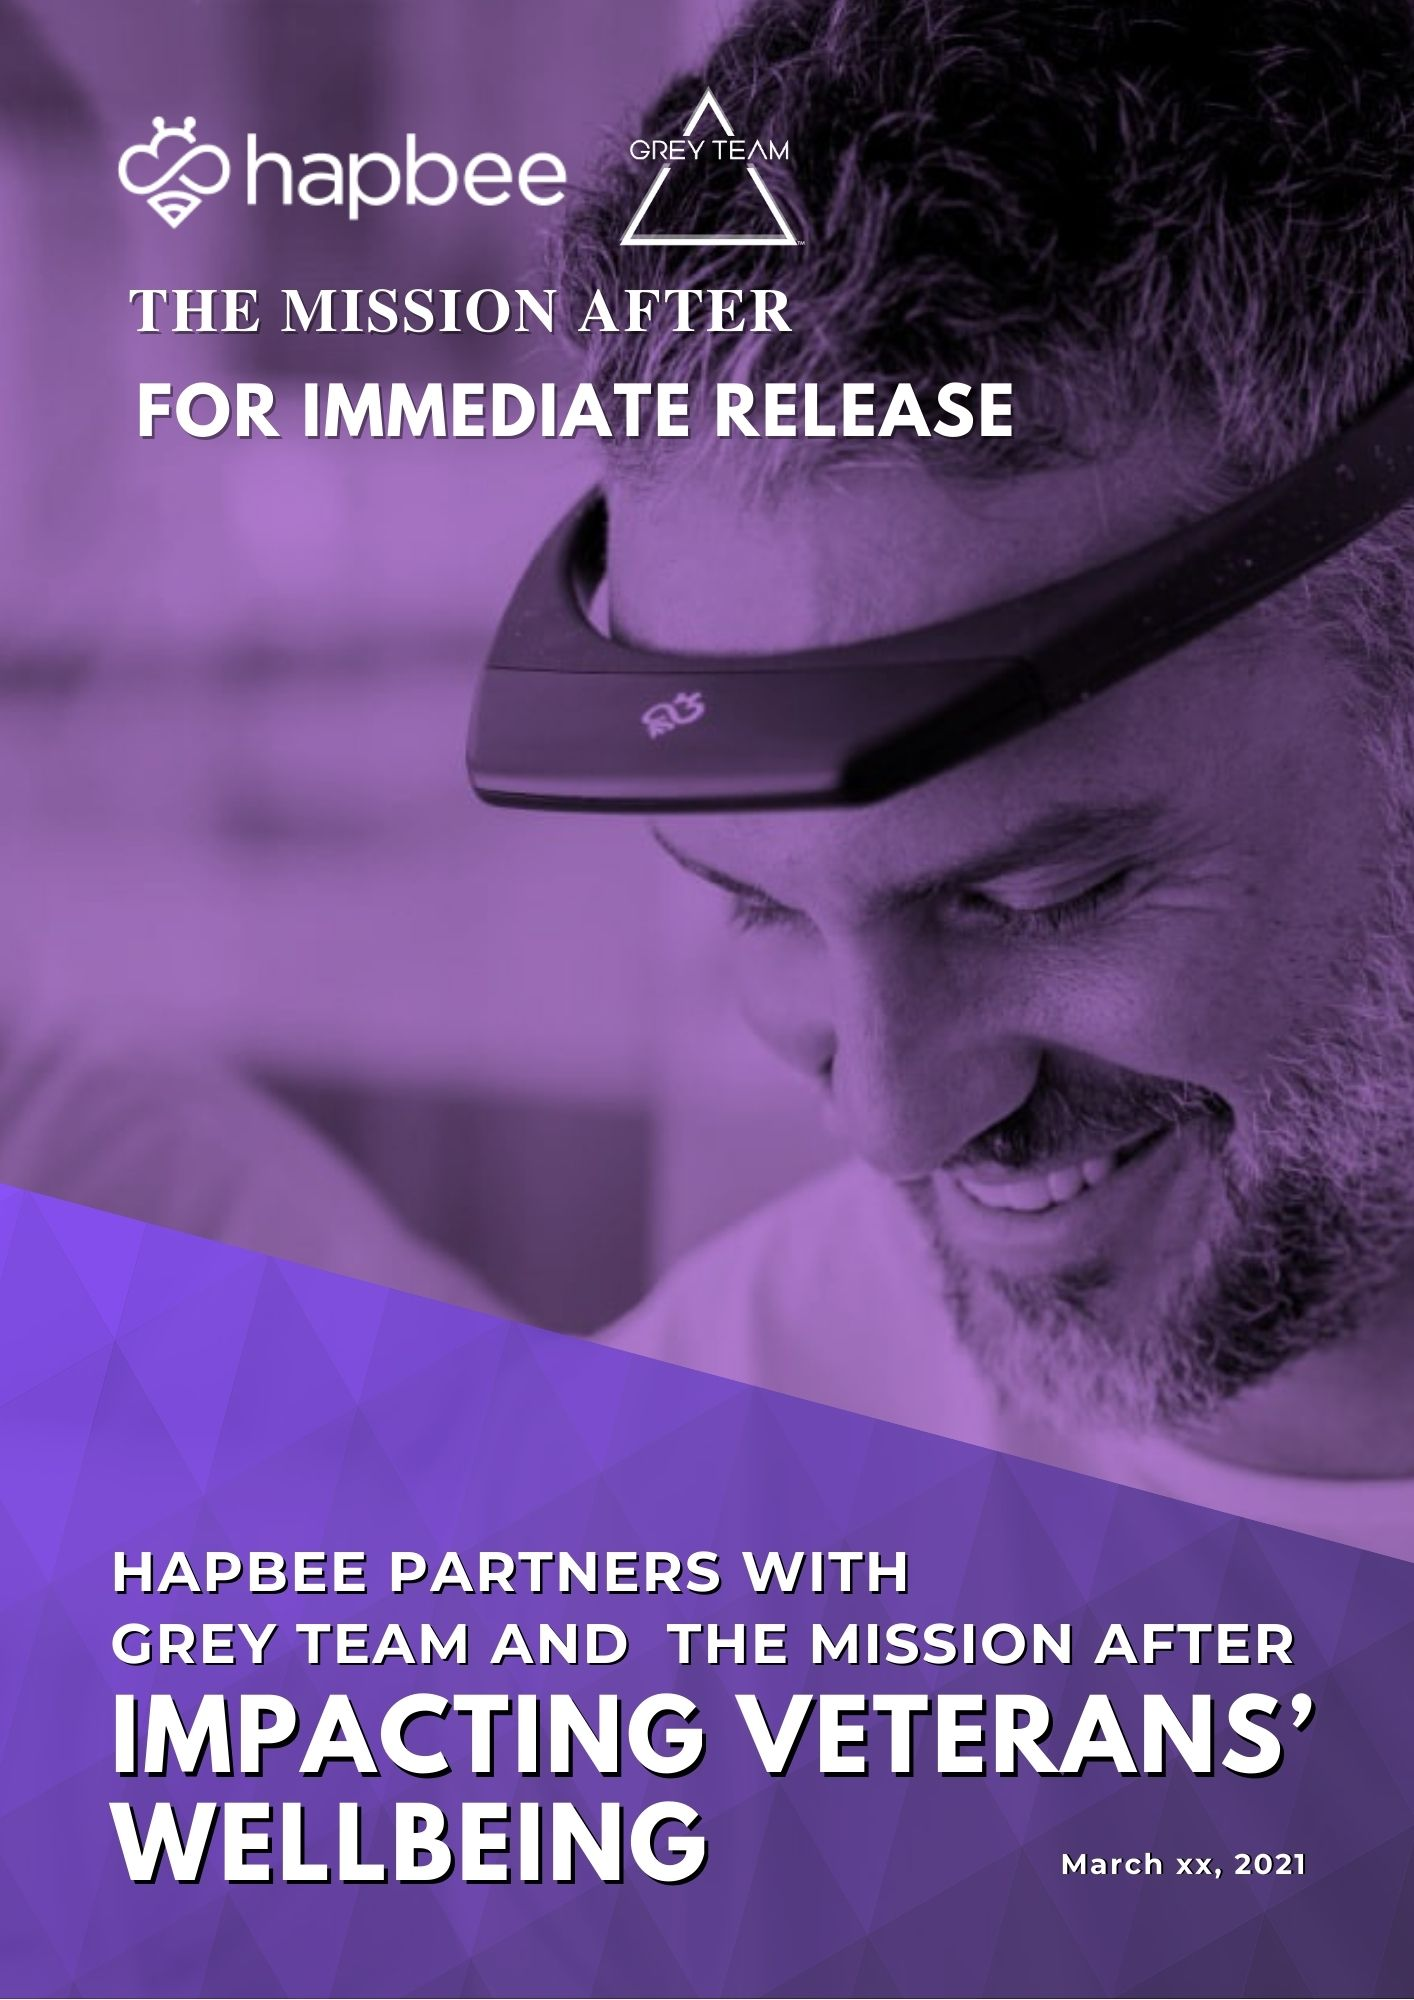 Hapbee Partners with Grey Team and The Mission After Impacting Veterans Wellbeing